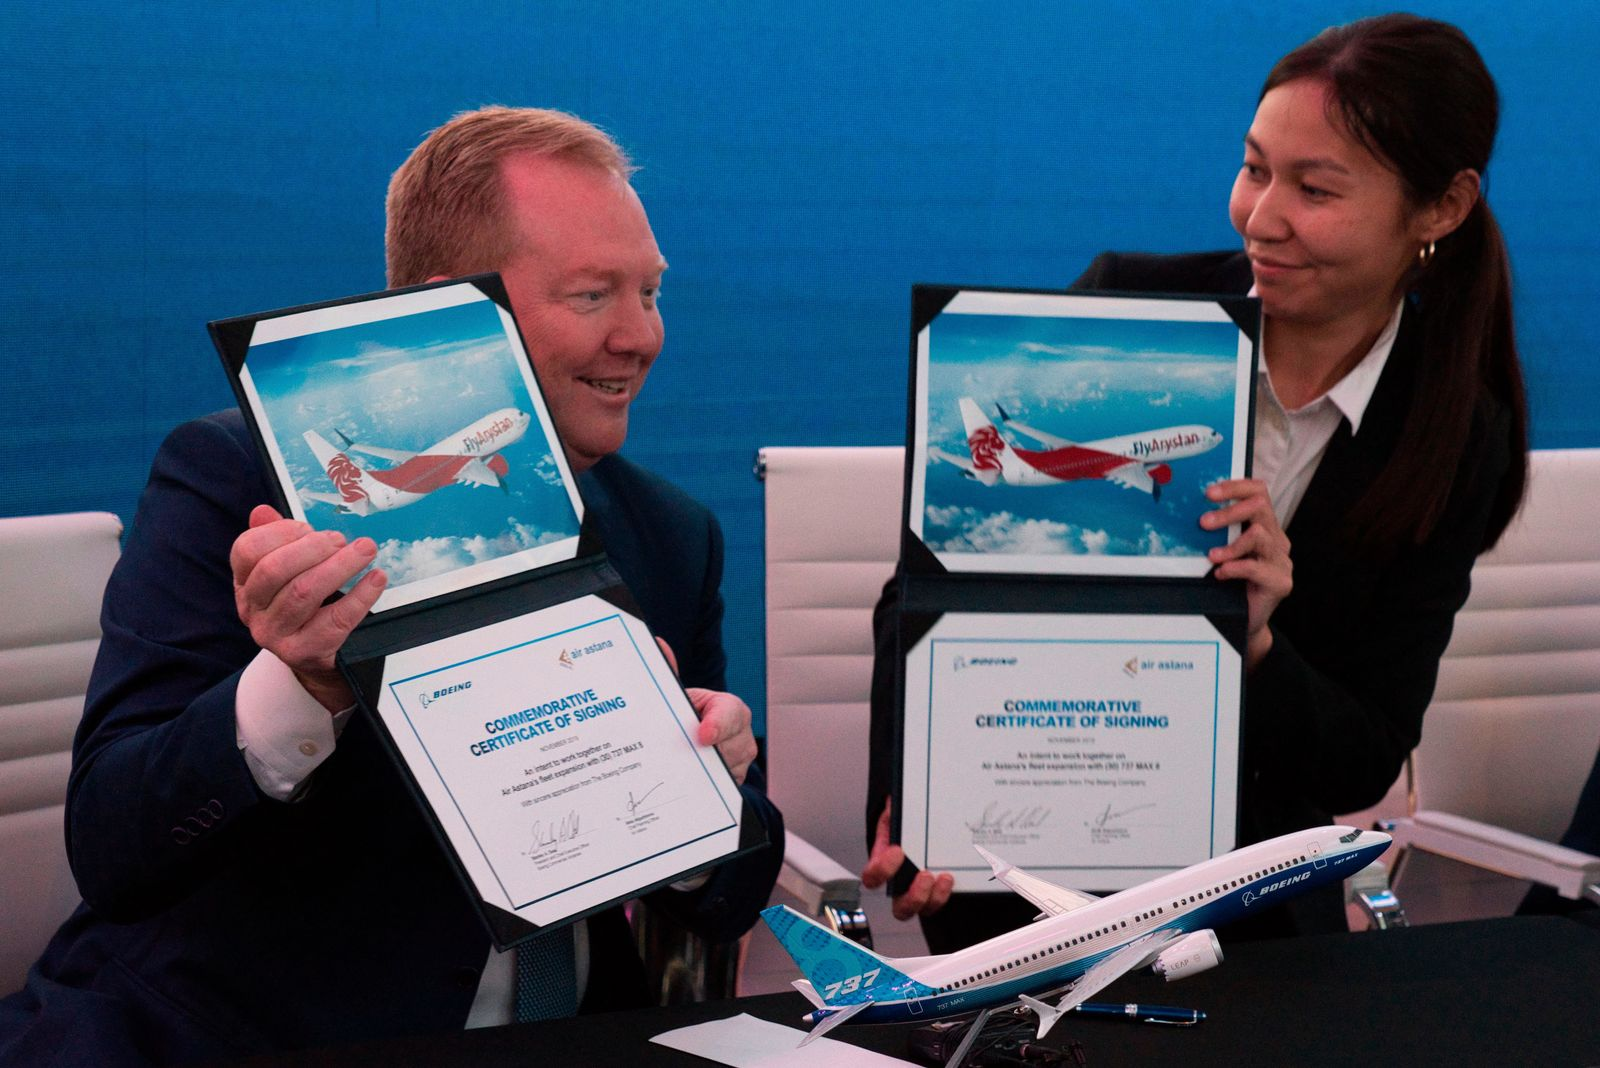 Boeing Commercial Airplanes president and CEO Stanley A. Deal, left, and Air Astana chief planning officer Alma Aliguzhinova pose at a news conference at the Dubai Airshow in Dubai, United Arab Emirates, Tuesday, Nov. 19, 2019. (AP Photo/Jon Gambrell)